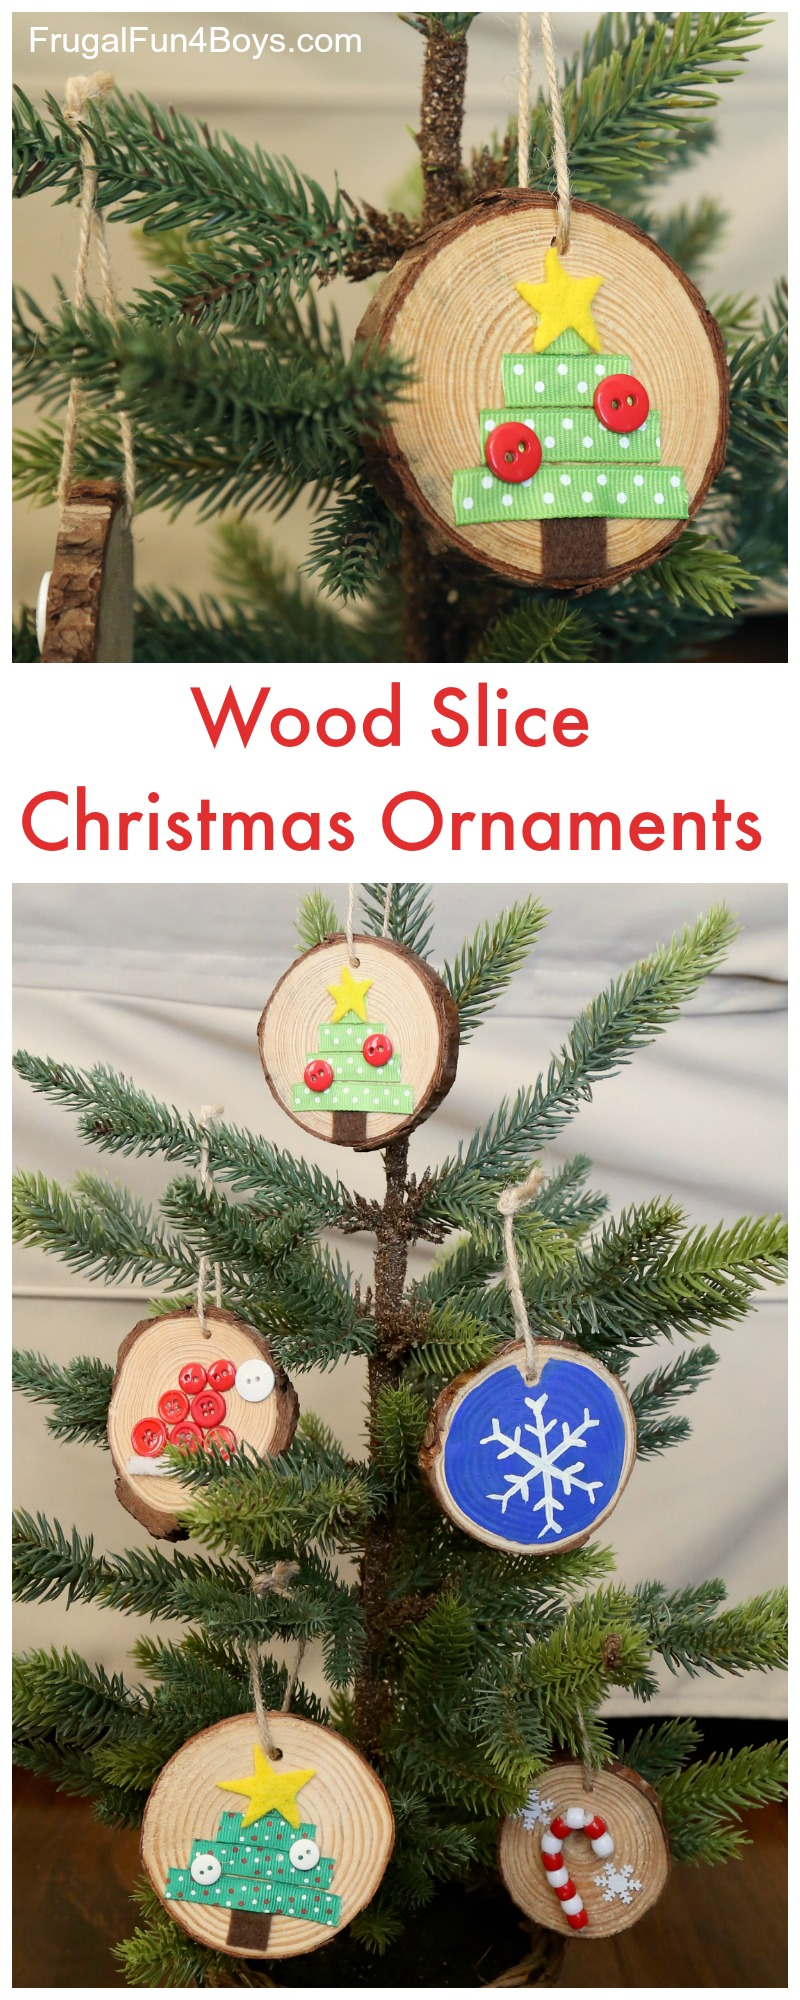 How To Make Adorable Wood Slice Christmas Ornaments Frugal Fun For